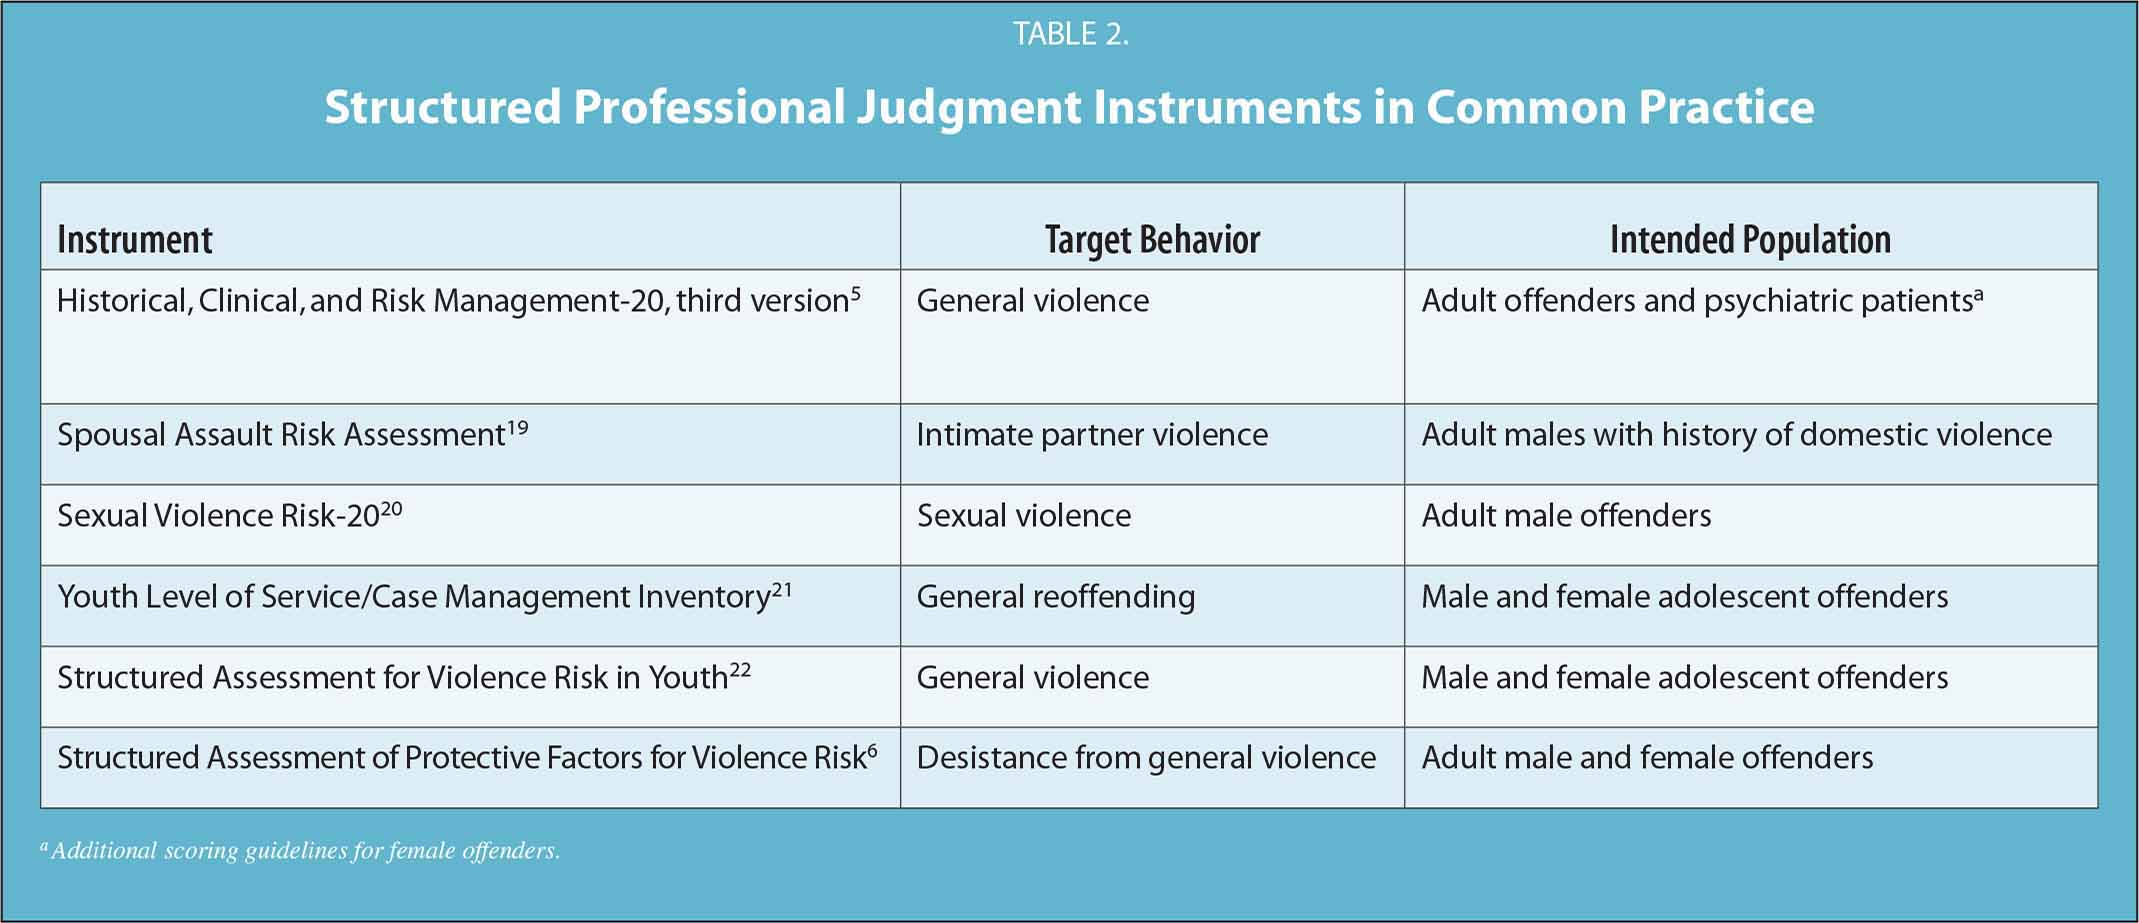 Structured Professional Judgment Instruments in Common Practice